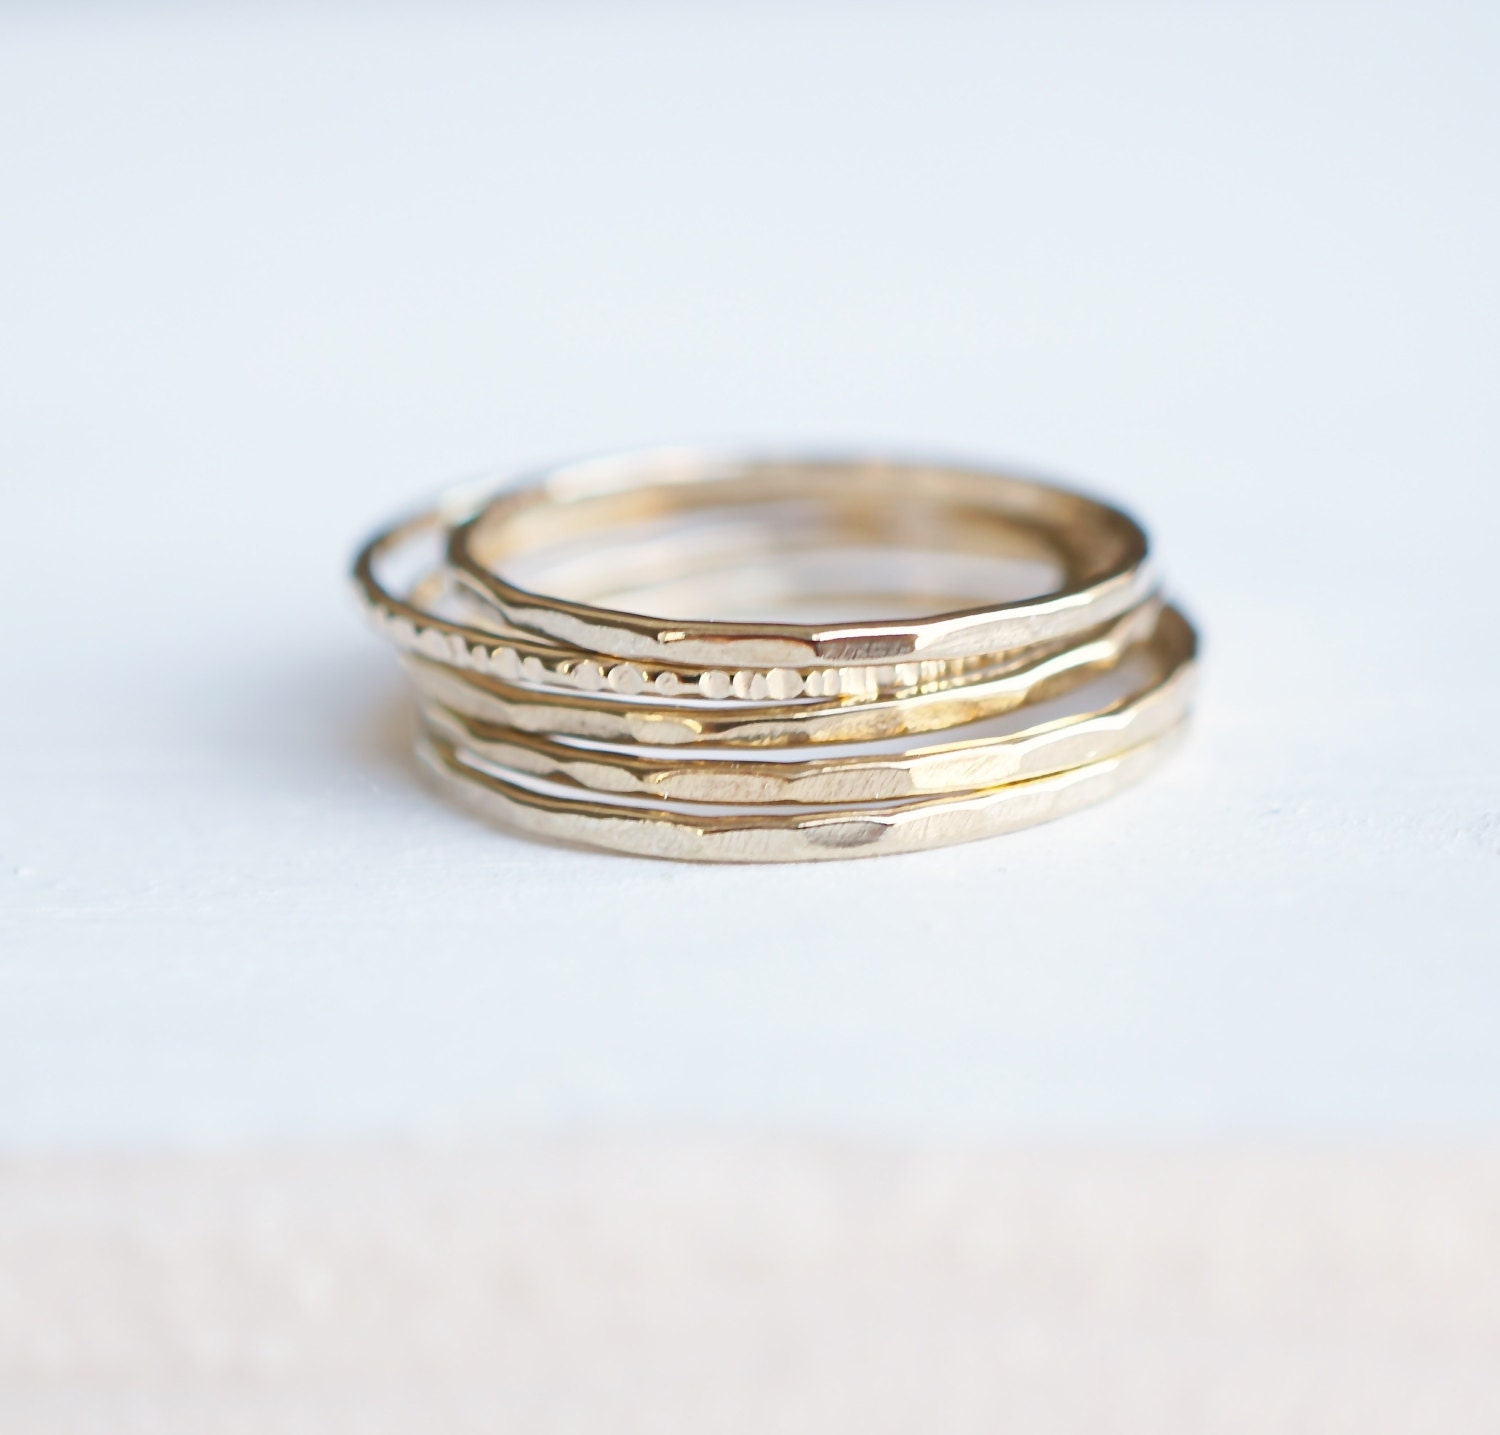 stackable rings ring set 14k gold rings gift for her by. Black Bedroom Furniture Sets. Home Design Ideas